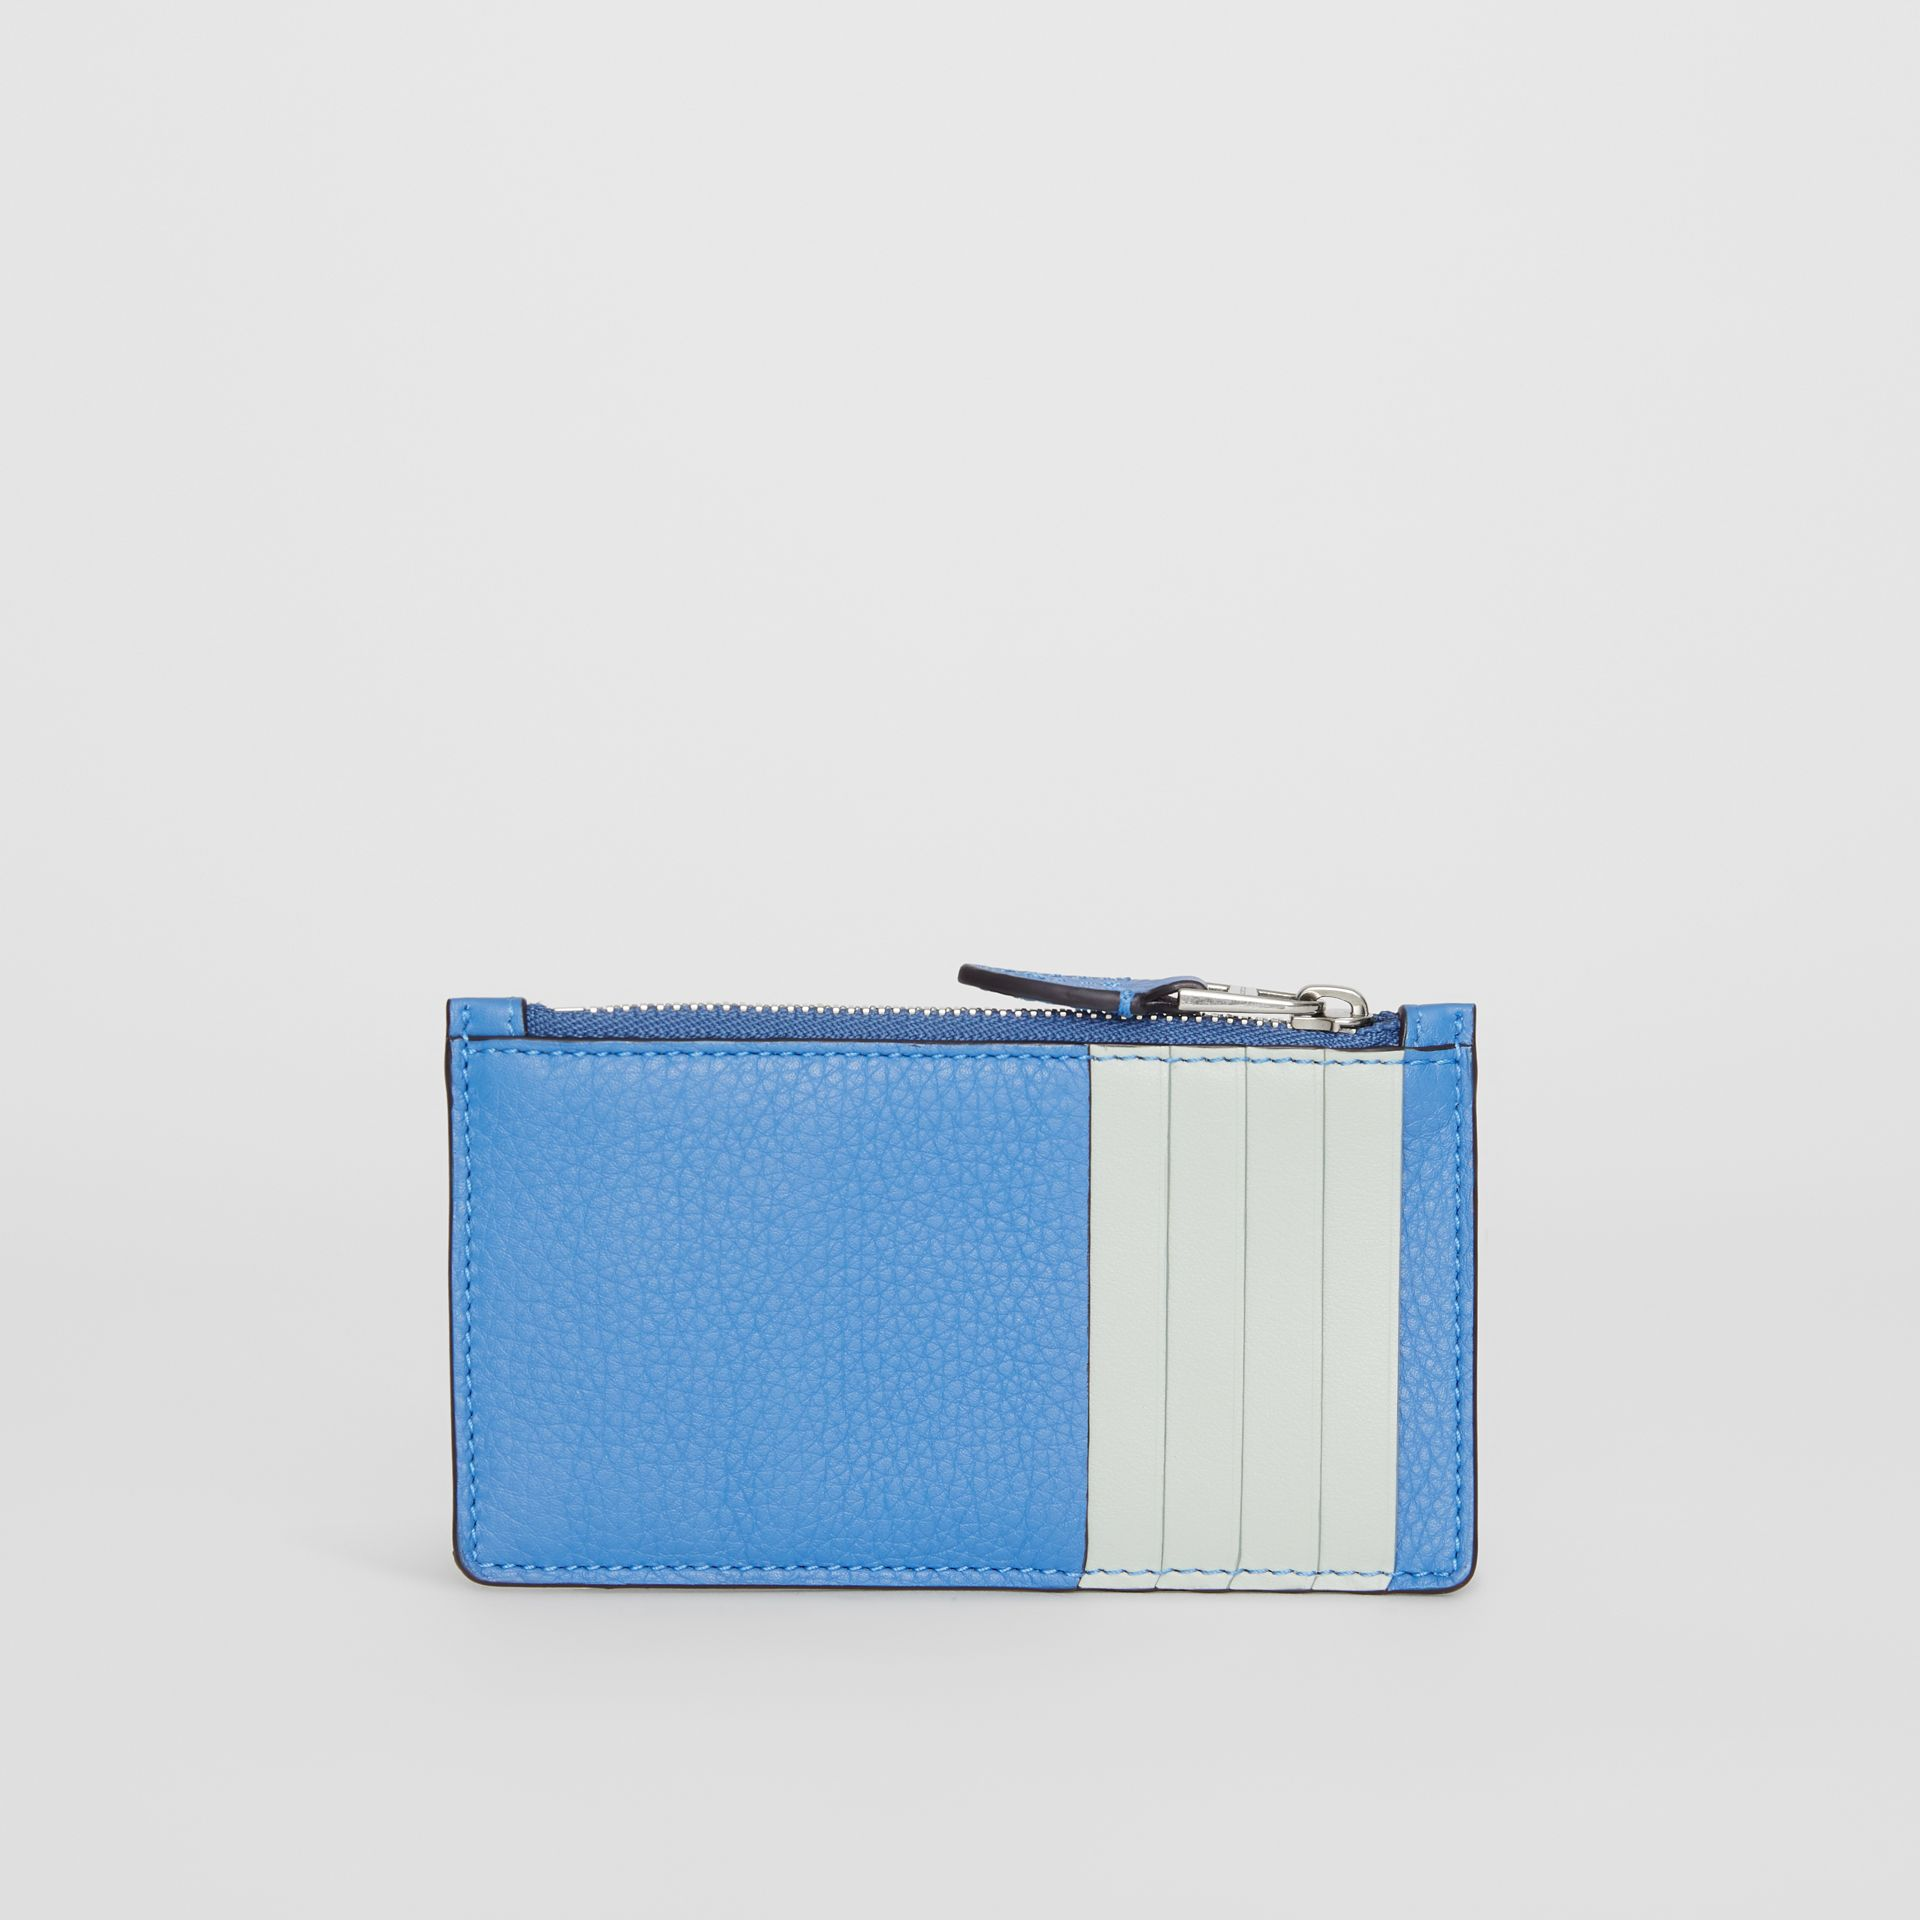 Two-tone Leather Card Case in Hydrangea Blue - Women | Burberry - gallery image 5